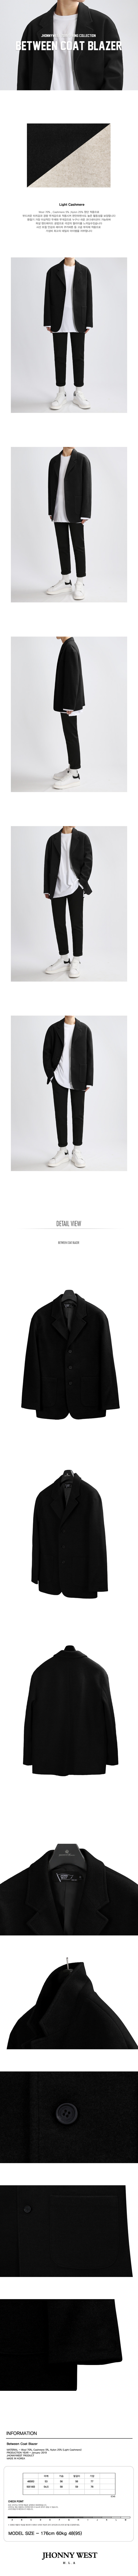 JHONNY WEST - Between Coat Blazer (Black) 2월25일 예약발송